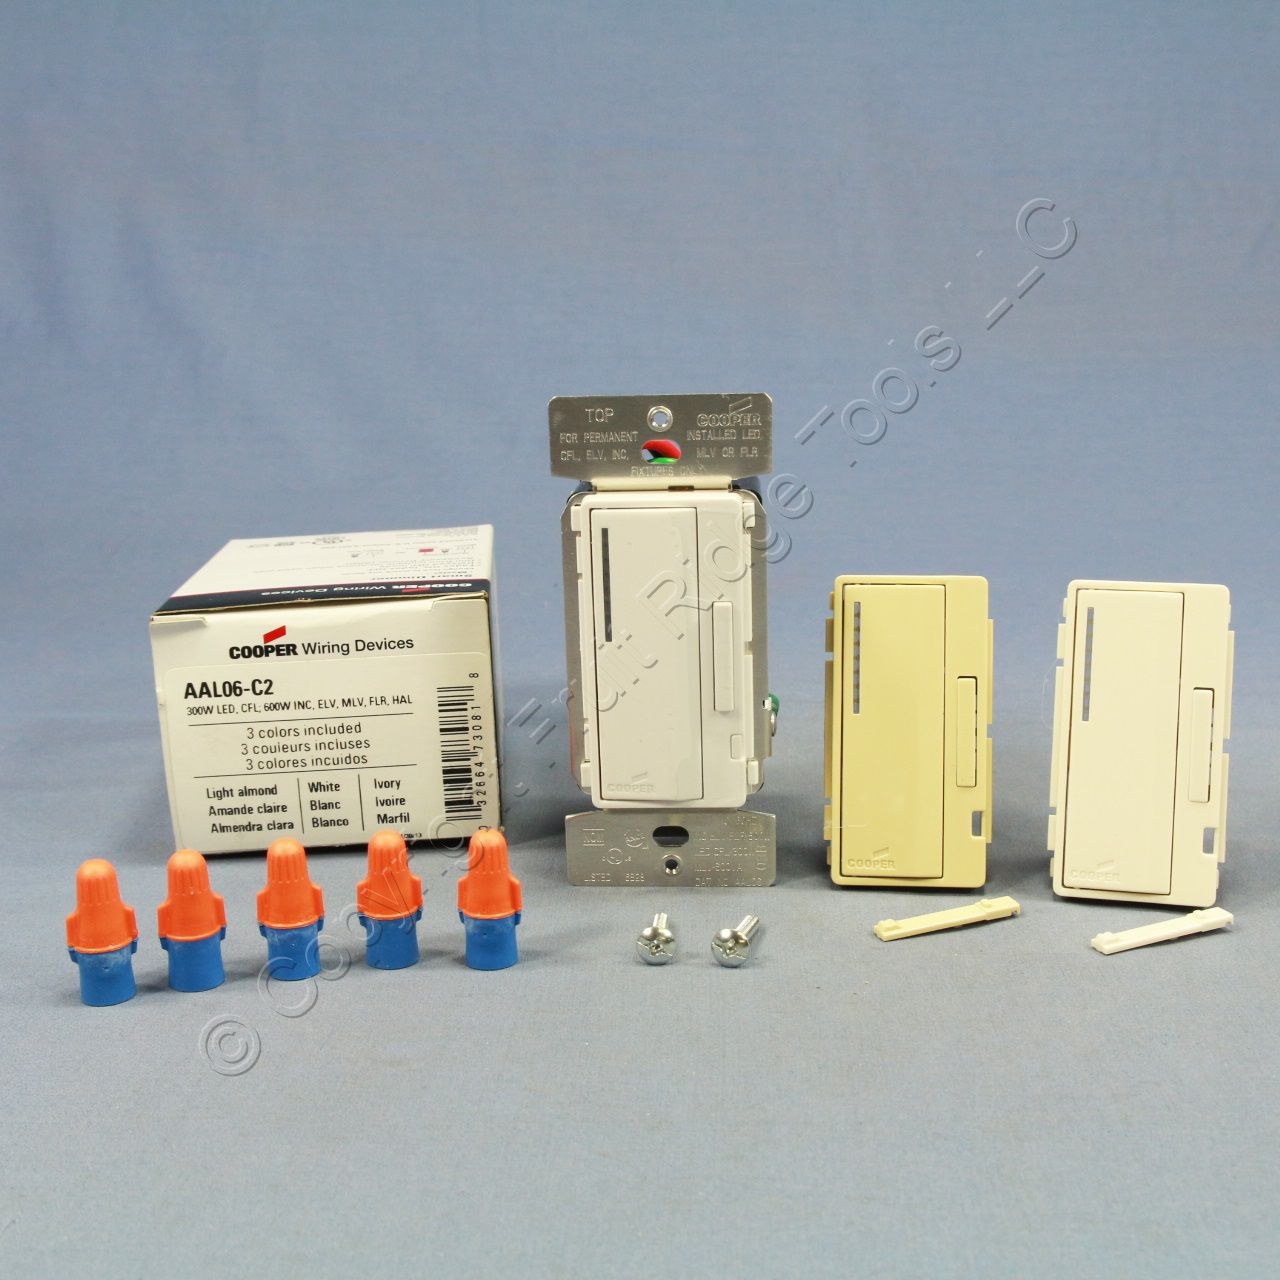 Cooper Wh La Iv Smart Al Series Dimmer Switch On Off 300w Led 600 Wiring Devices Inc Aal06 C2